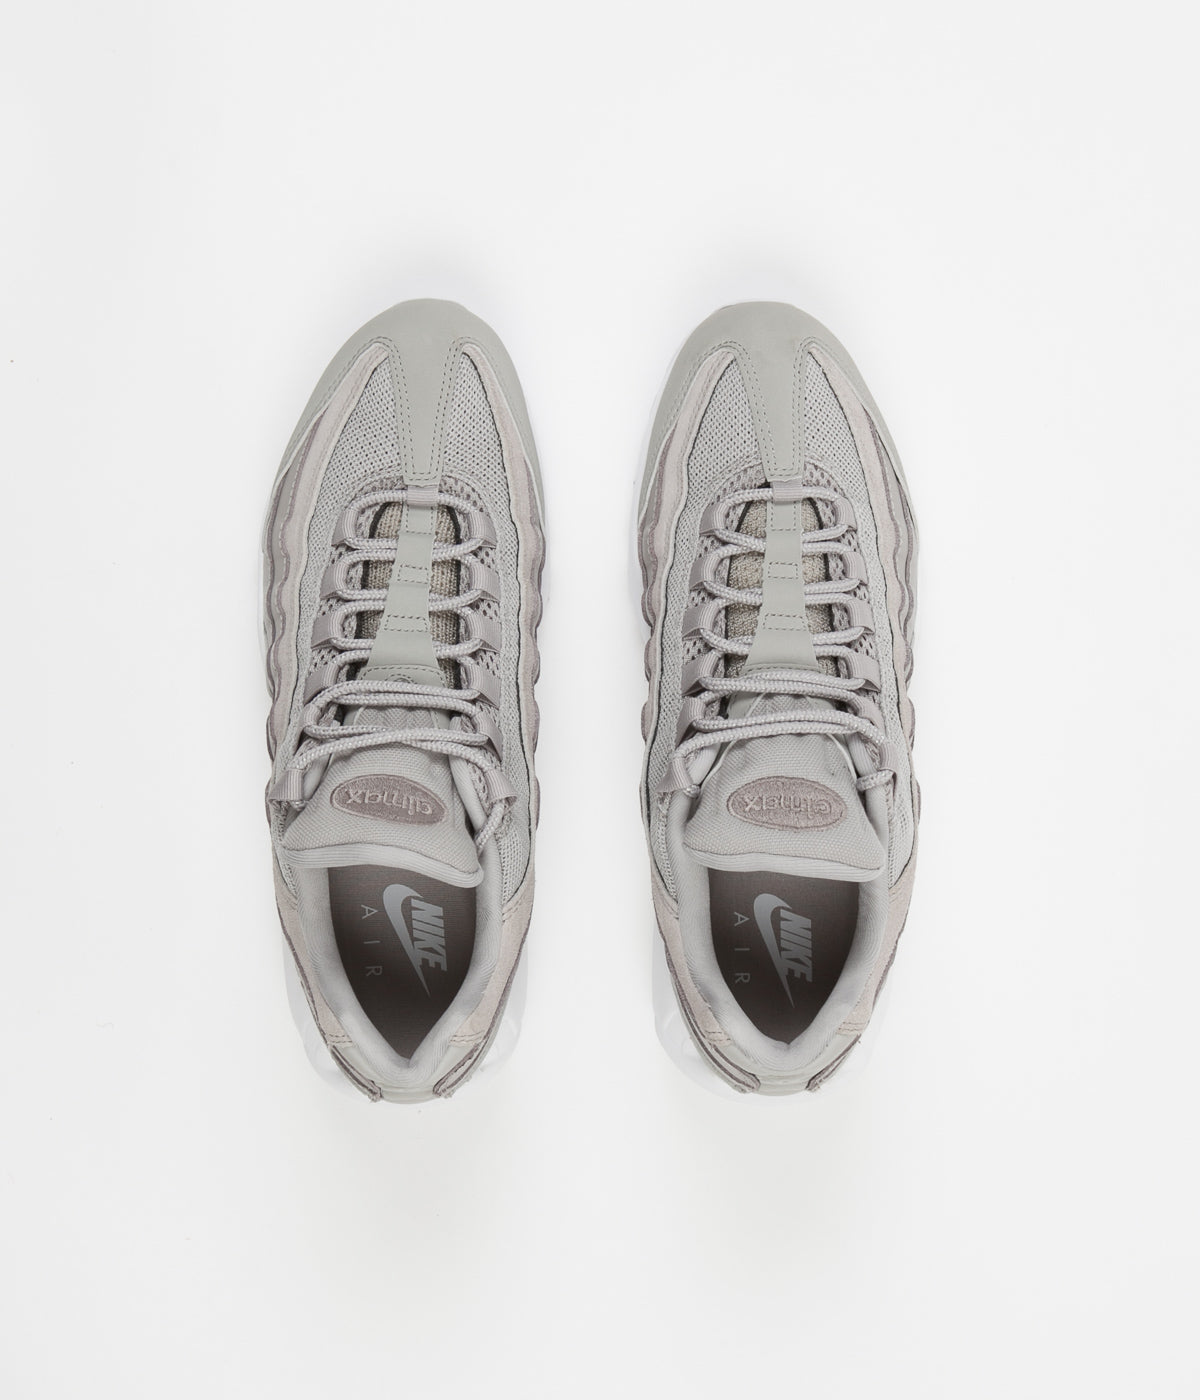 uk nike air max 95 ue fe19f a1acf